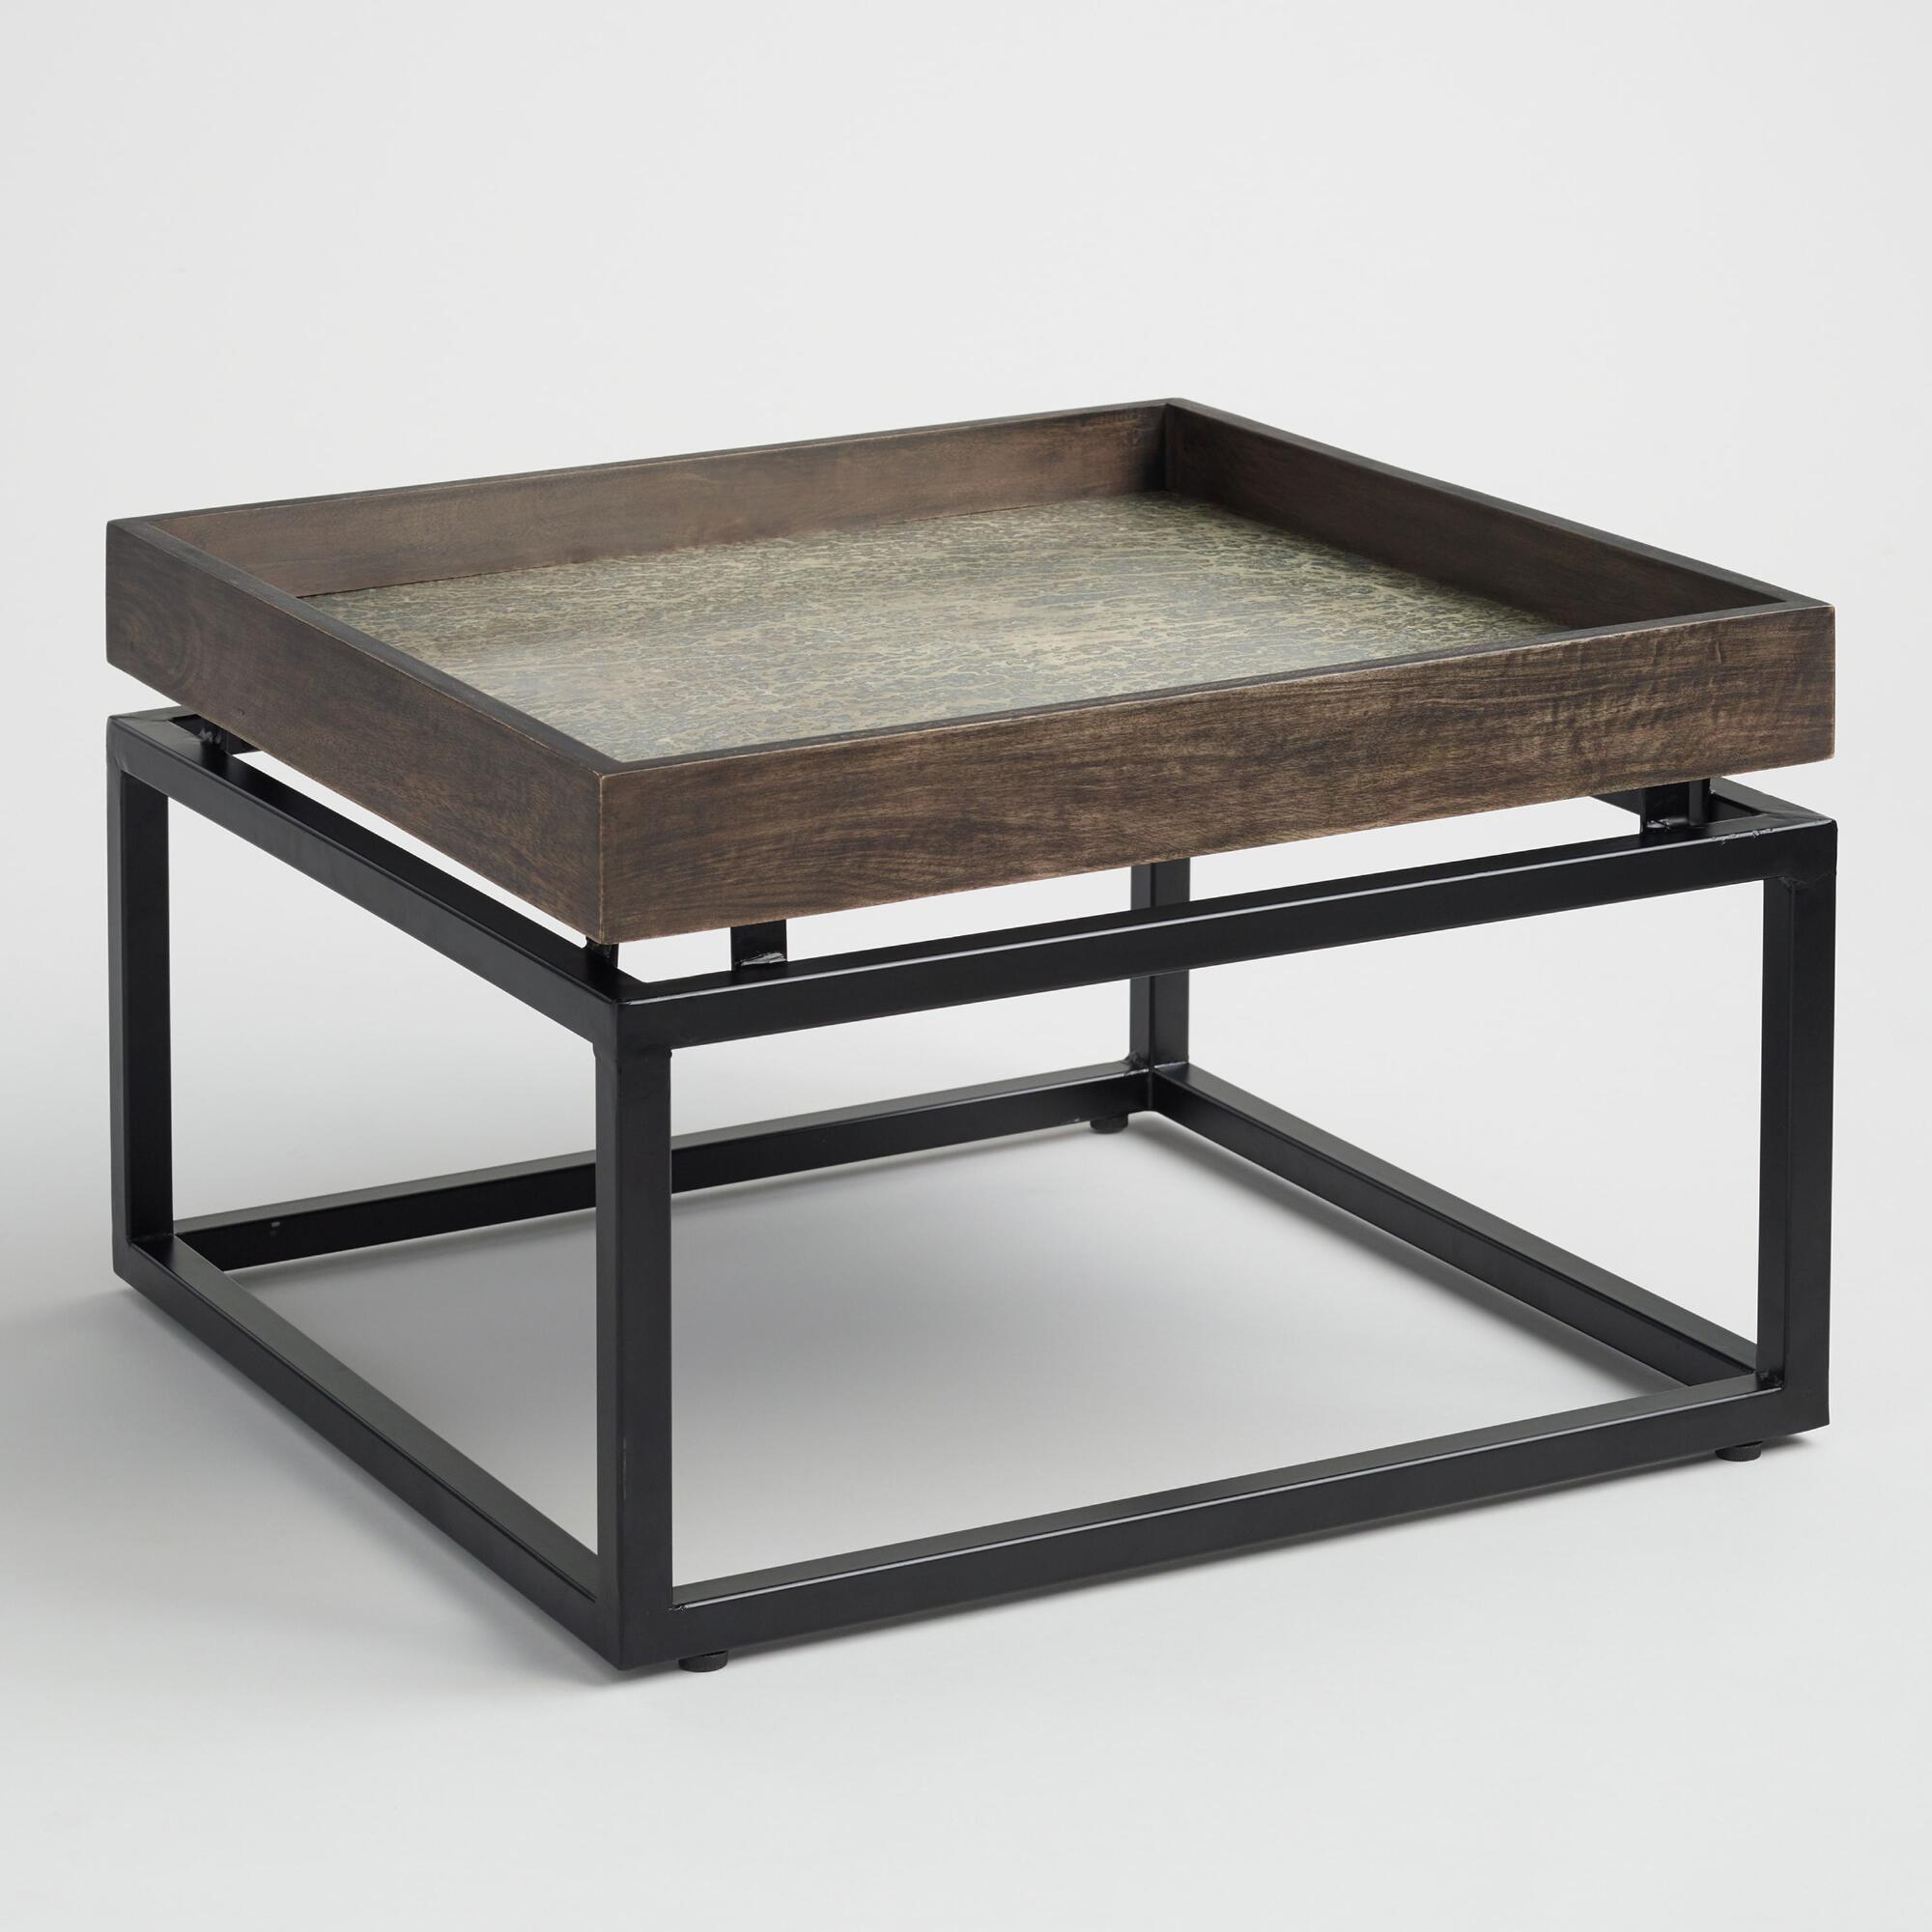 Square Tray Top Jayla Coffee Table: Black/Brown - Metal  by World Market